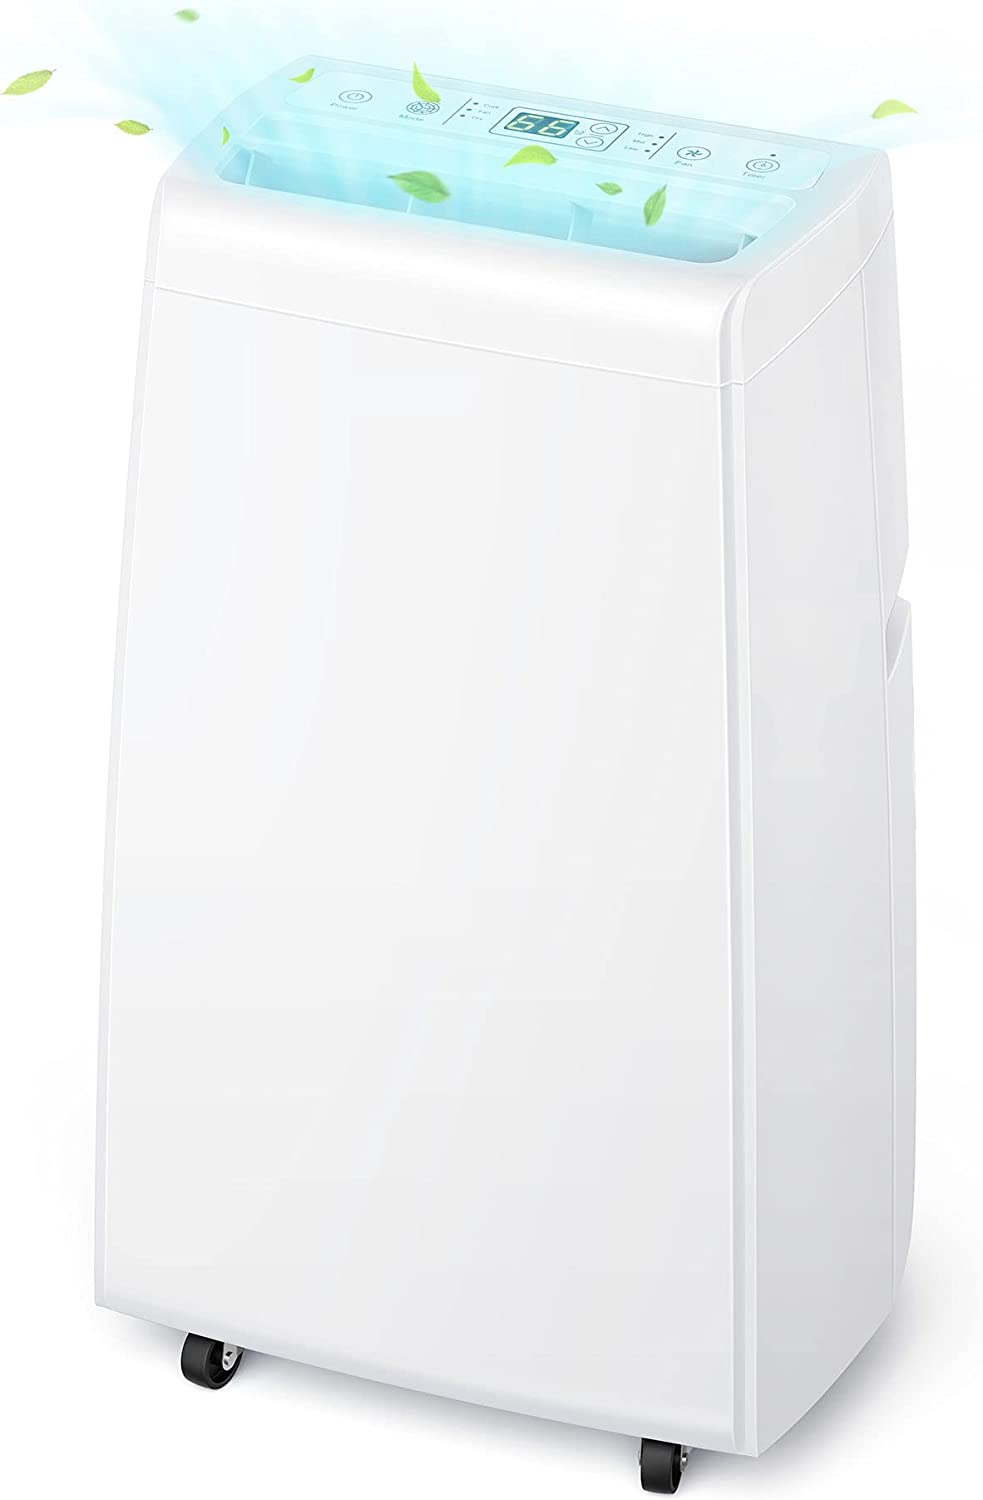 Portable Air Conditioner 年間定番 アイテム勢ぞろい 10000 BTU with 3-in-1 AC Unit